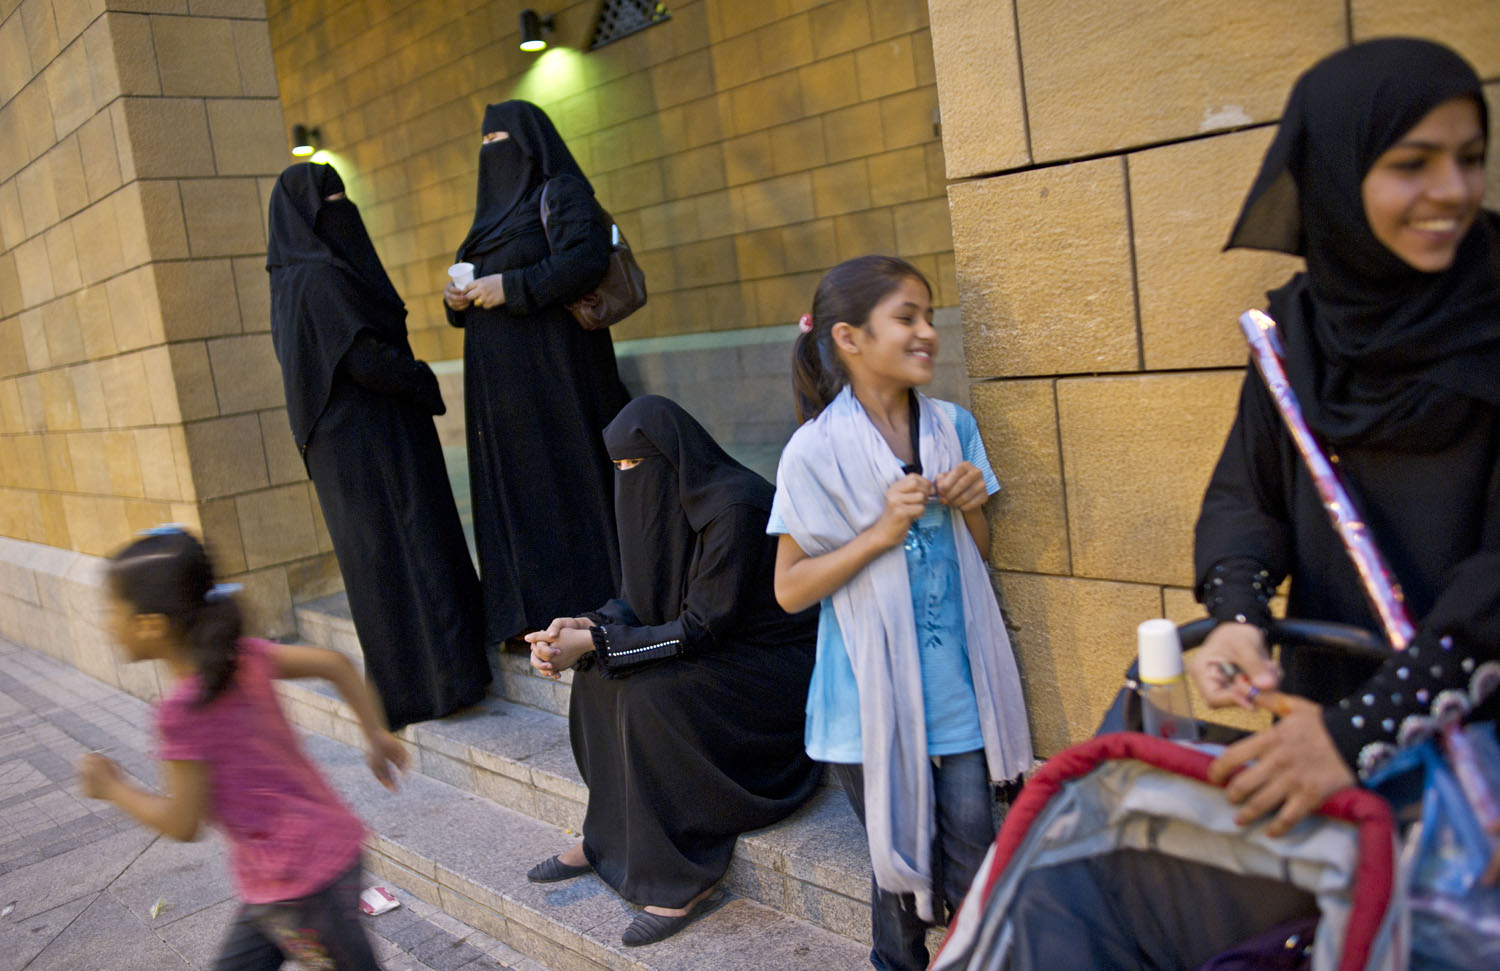 Saudi women sit outside of the mosque during evening prayer in Diera, in Riyadh, Saudi Arabia, June 10, 2011. Saudi Arabia is governed by Sharia Law, which is law according to Islam, and thus there are many cultural restrictions which segregate men and women throughout society; all businesses must close for the five prayer times per day in Saudi.